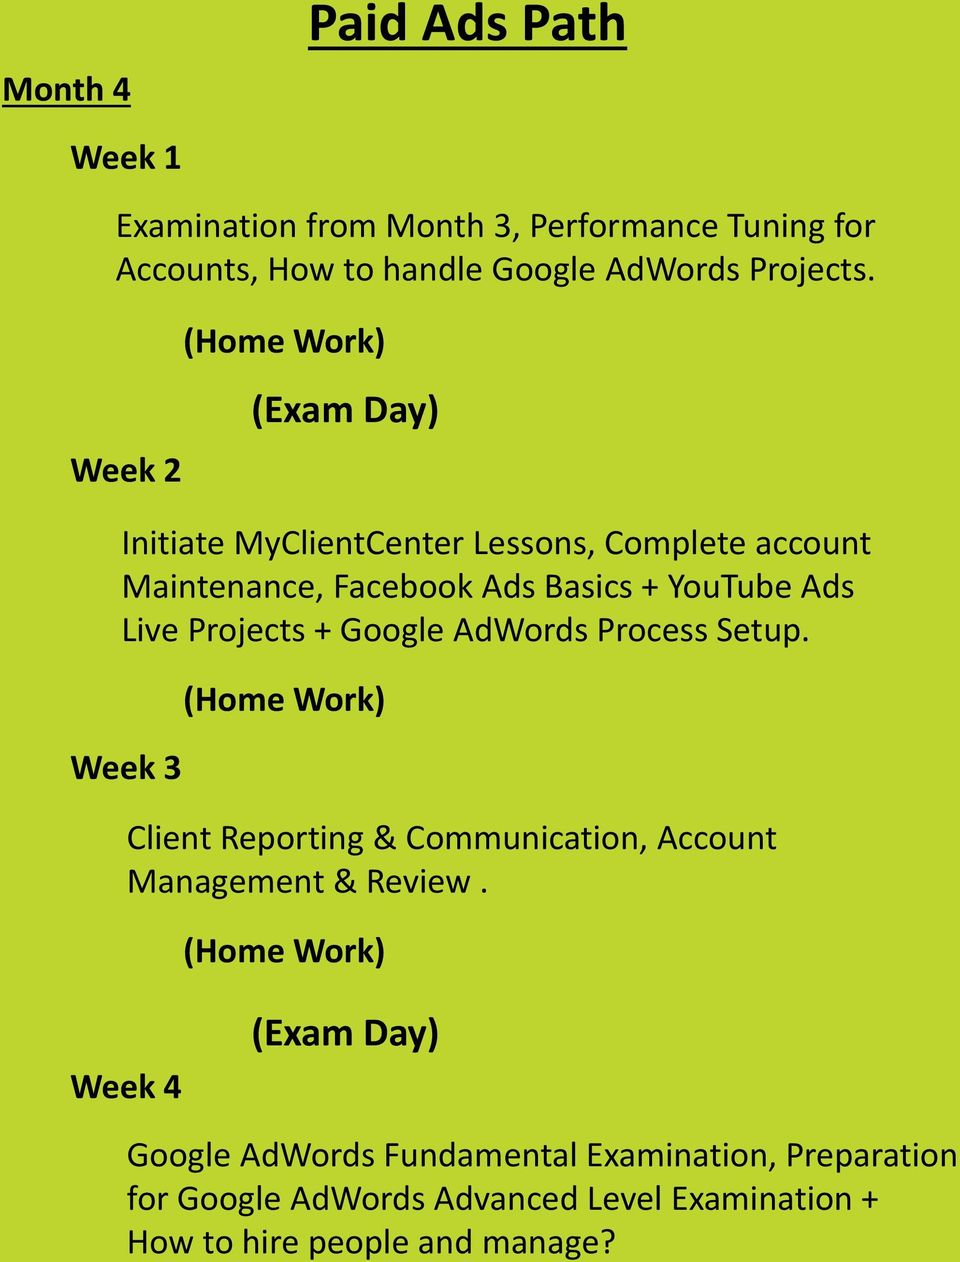 Week 2 Week 3 Initiate MyClientCenter Lessons, Complete account Maintenance, Facebook Ads Basics + YouTube Ads Live